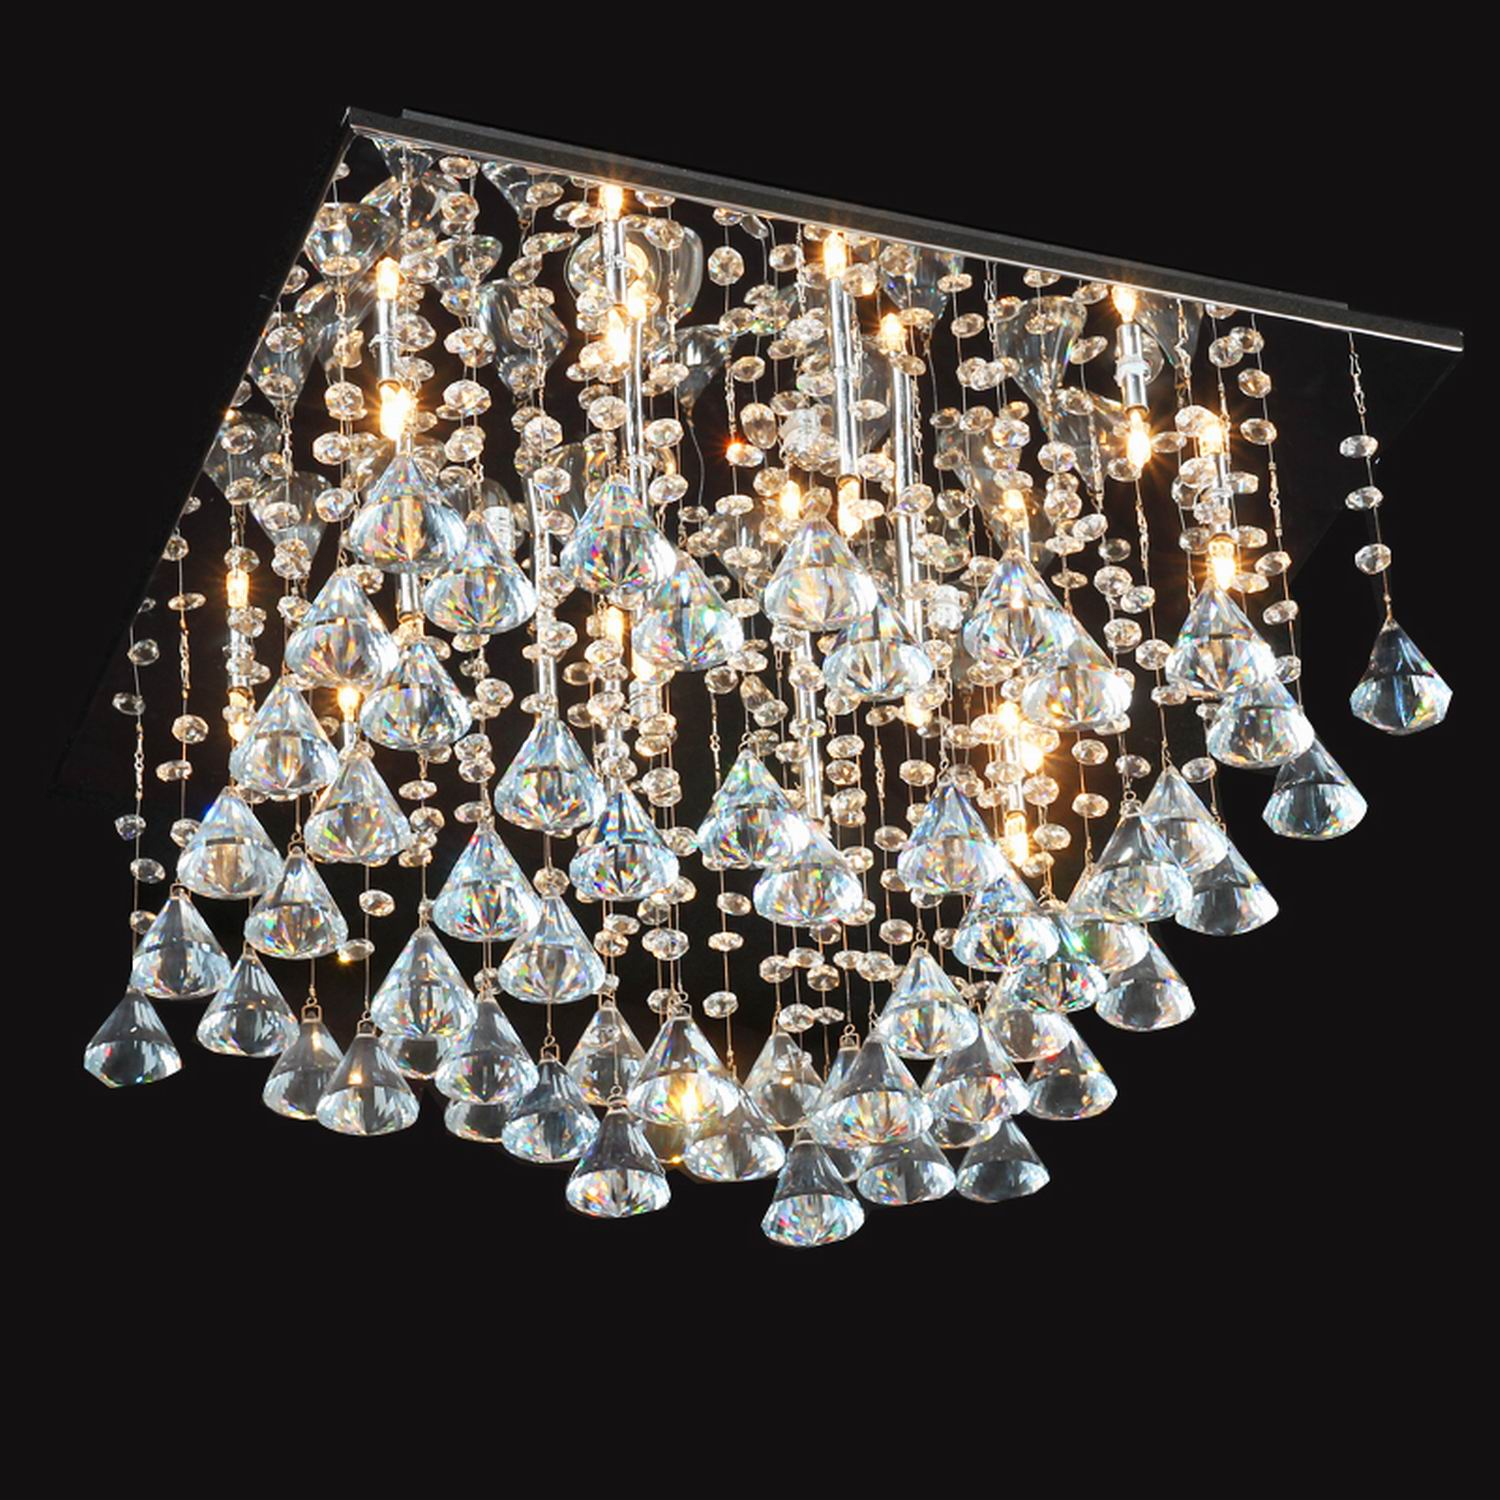 Dining Room Chandeliers Traditional Crystals: Chandeliers Crystal Glass Traditional/Classic For Living